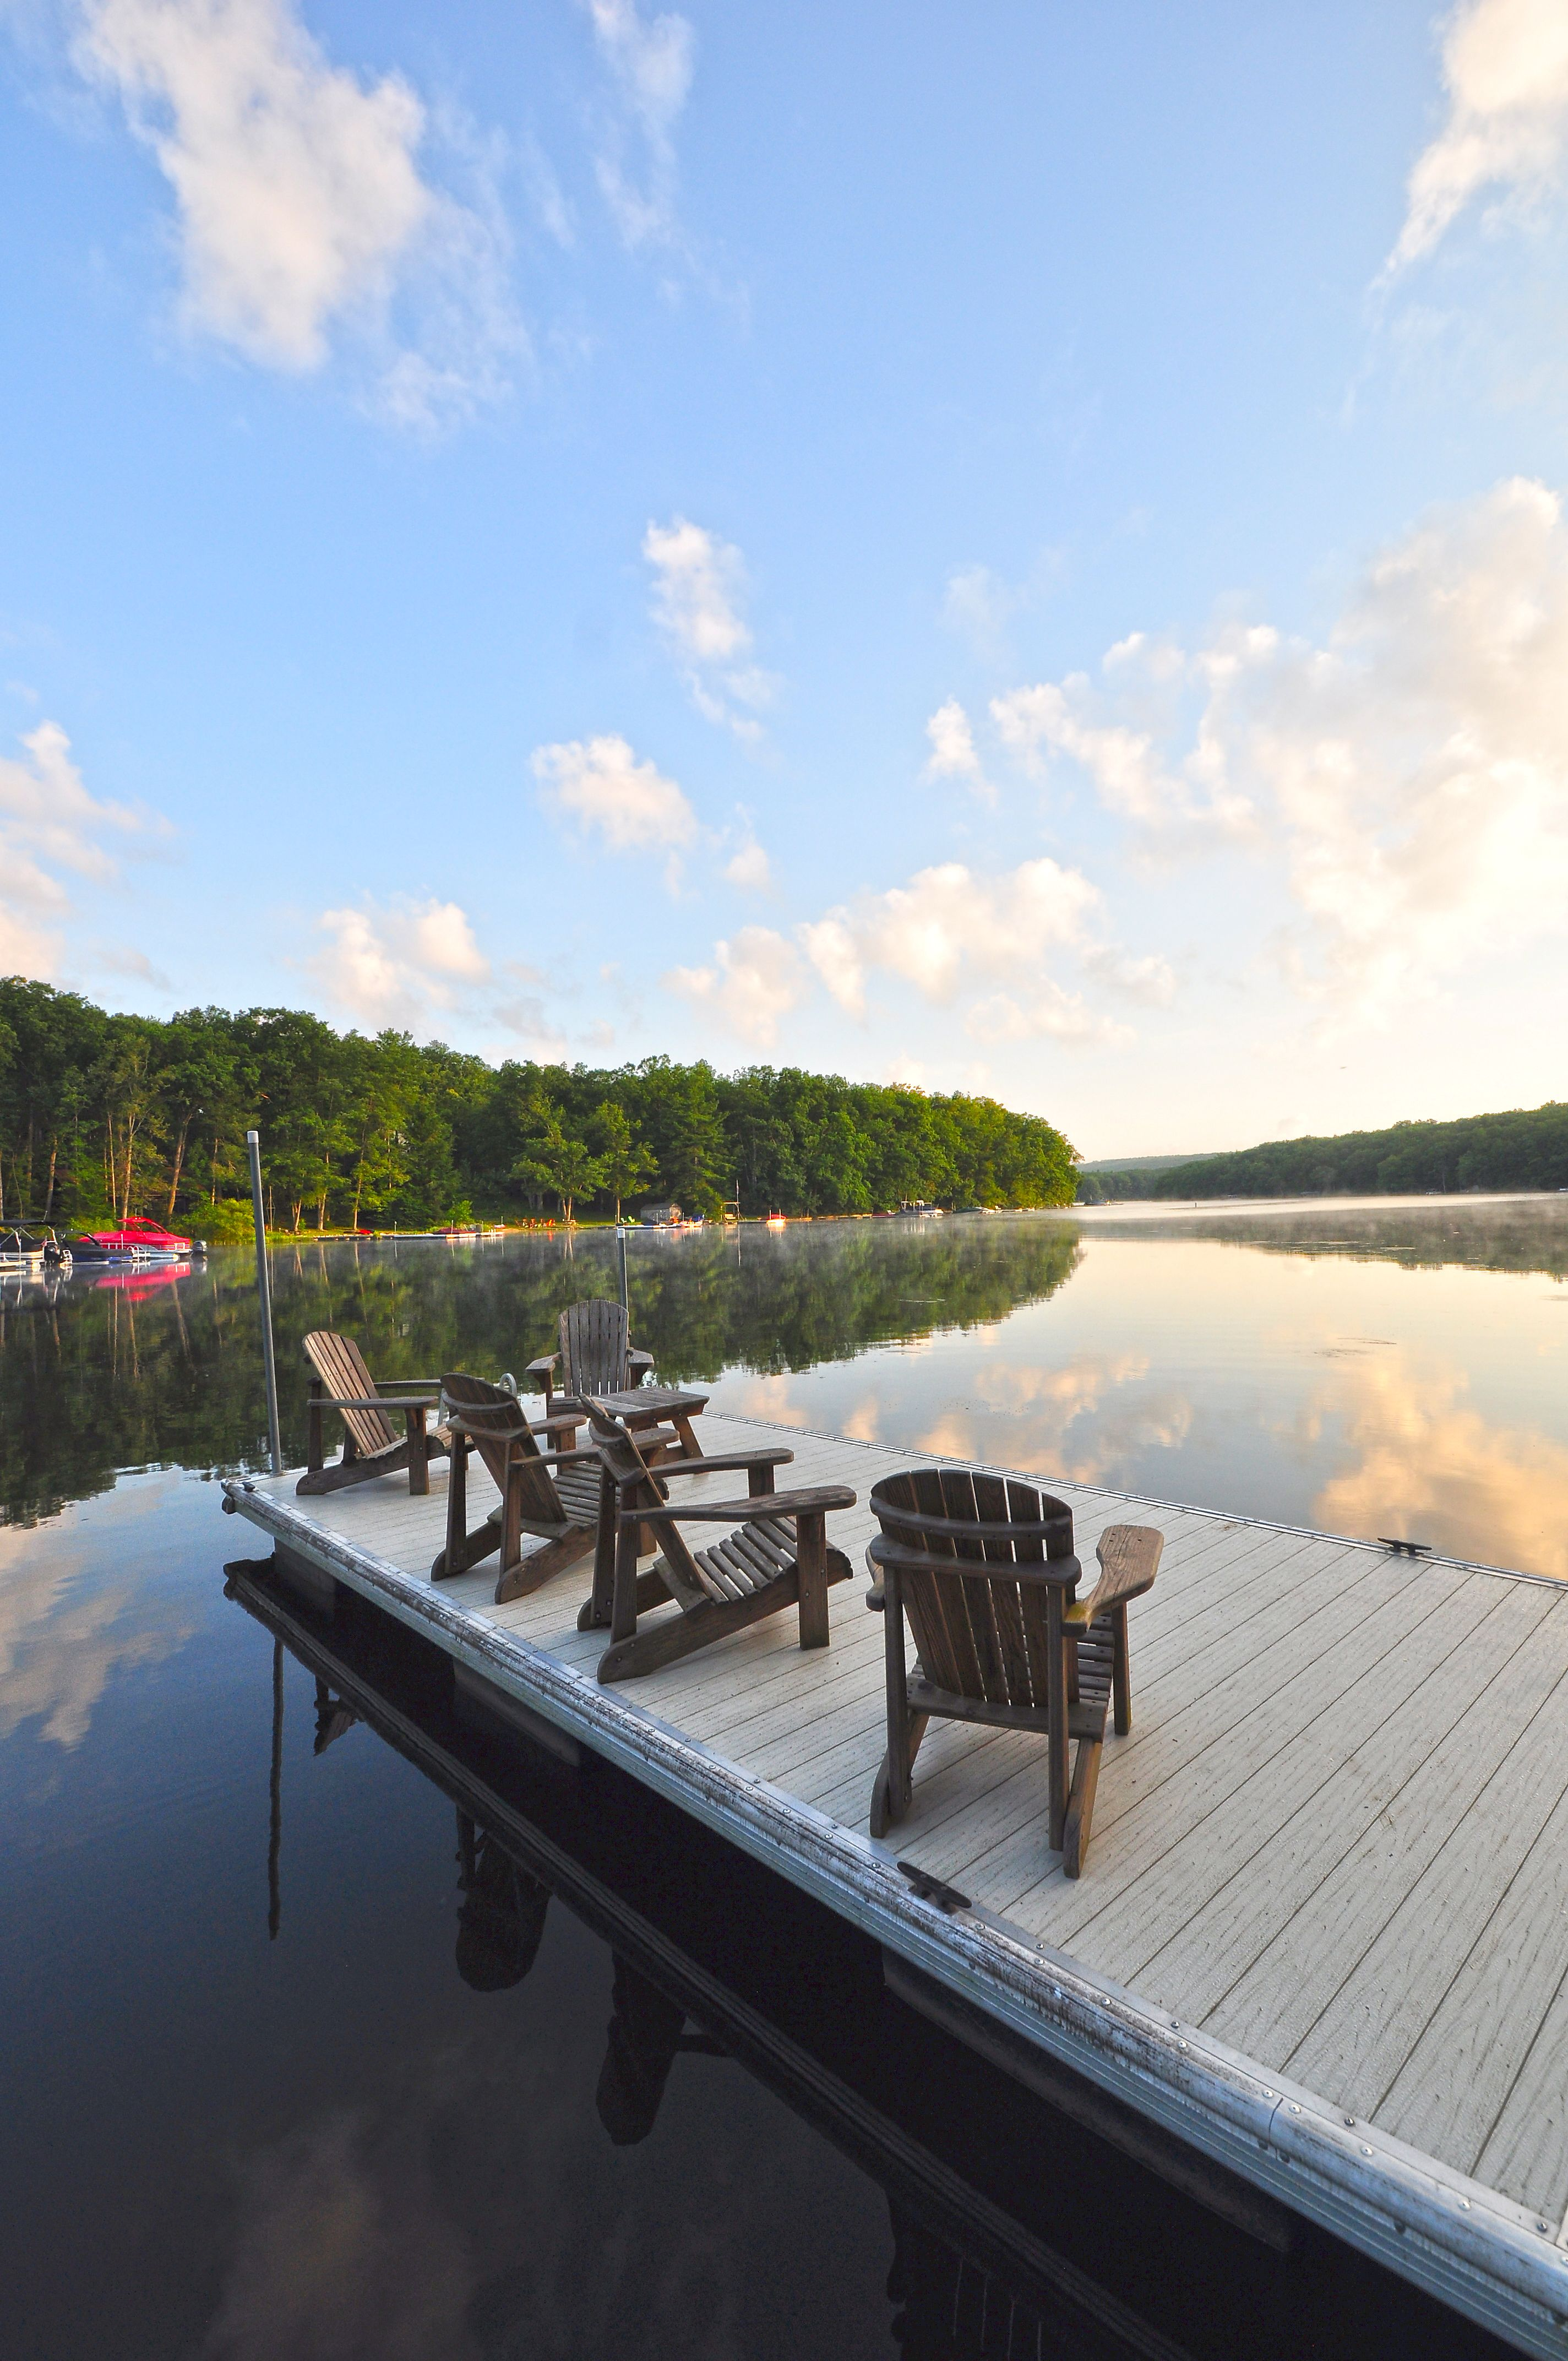 Search Deep Creek Lake Vacation Homes With Private Docks Lake Vacation Rental Private Dock Lake Vacation